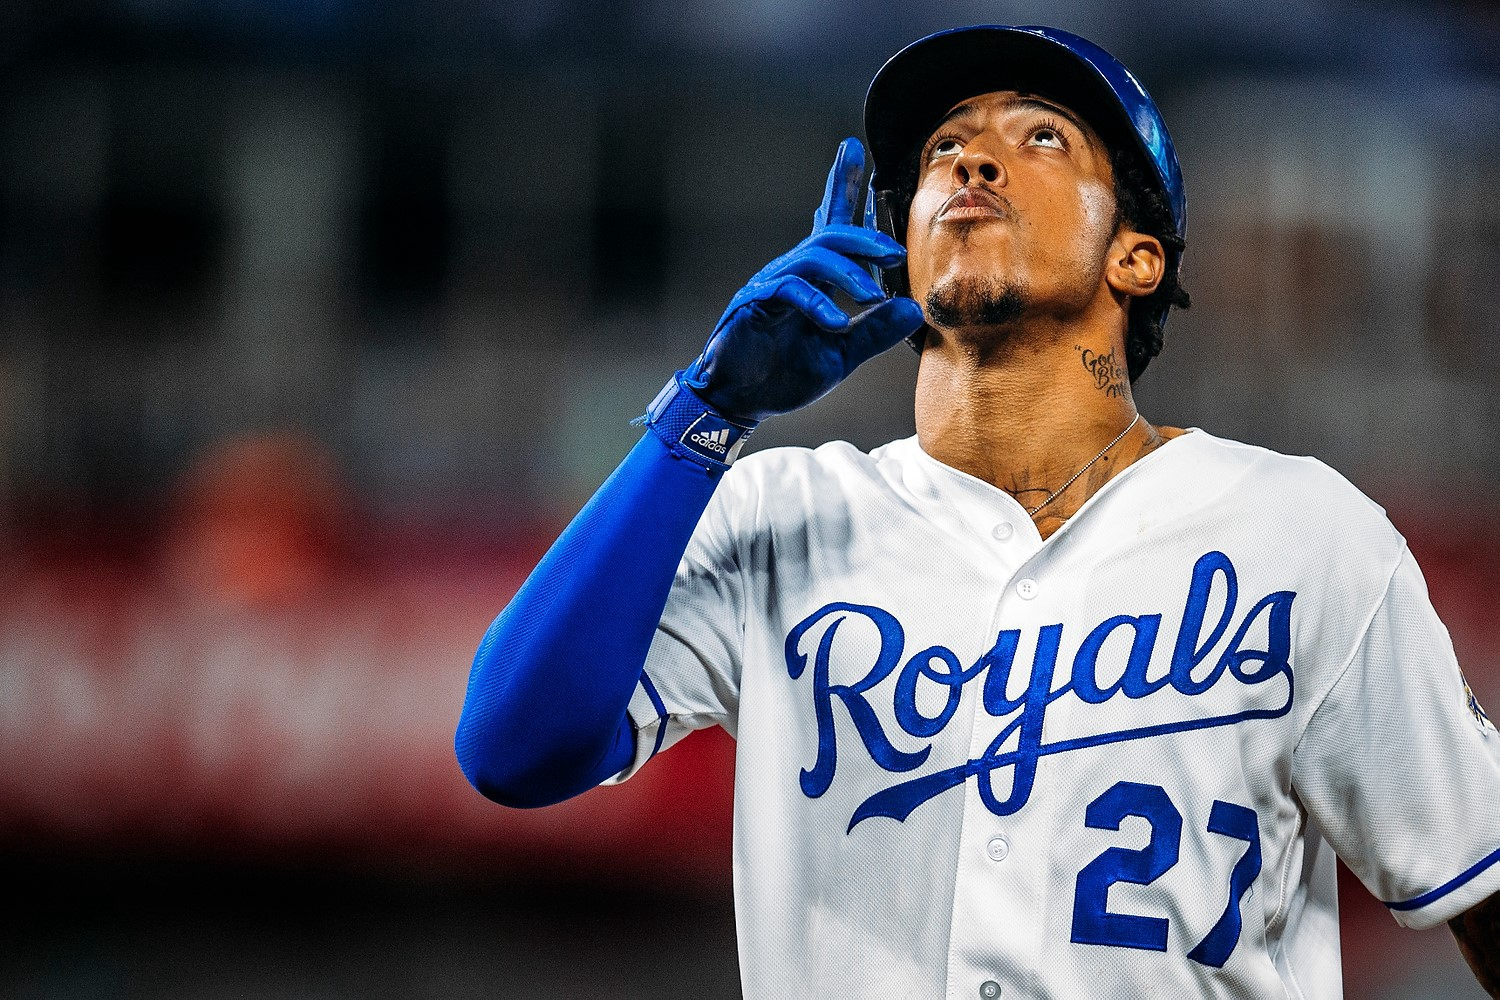 separation shoes e5c50 bea65 Stat of the Day: Mondesi Joins Elite Company - Royal Rundown